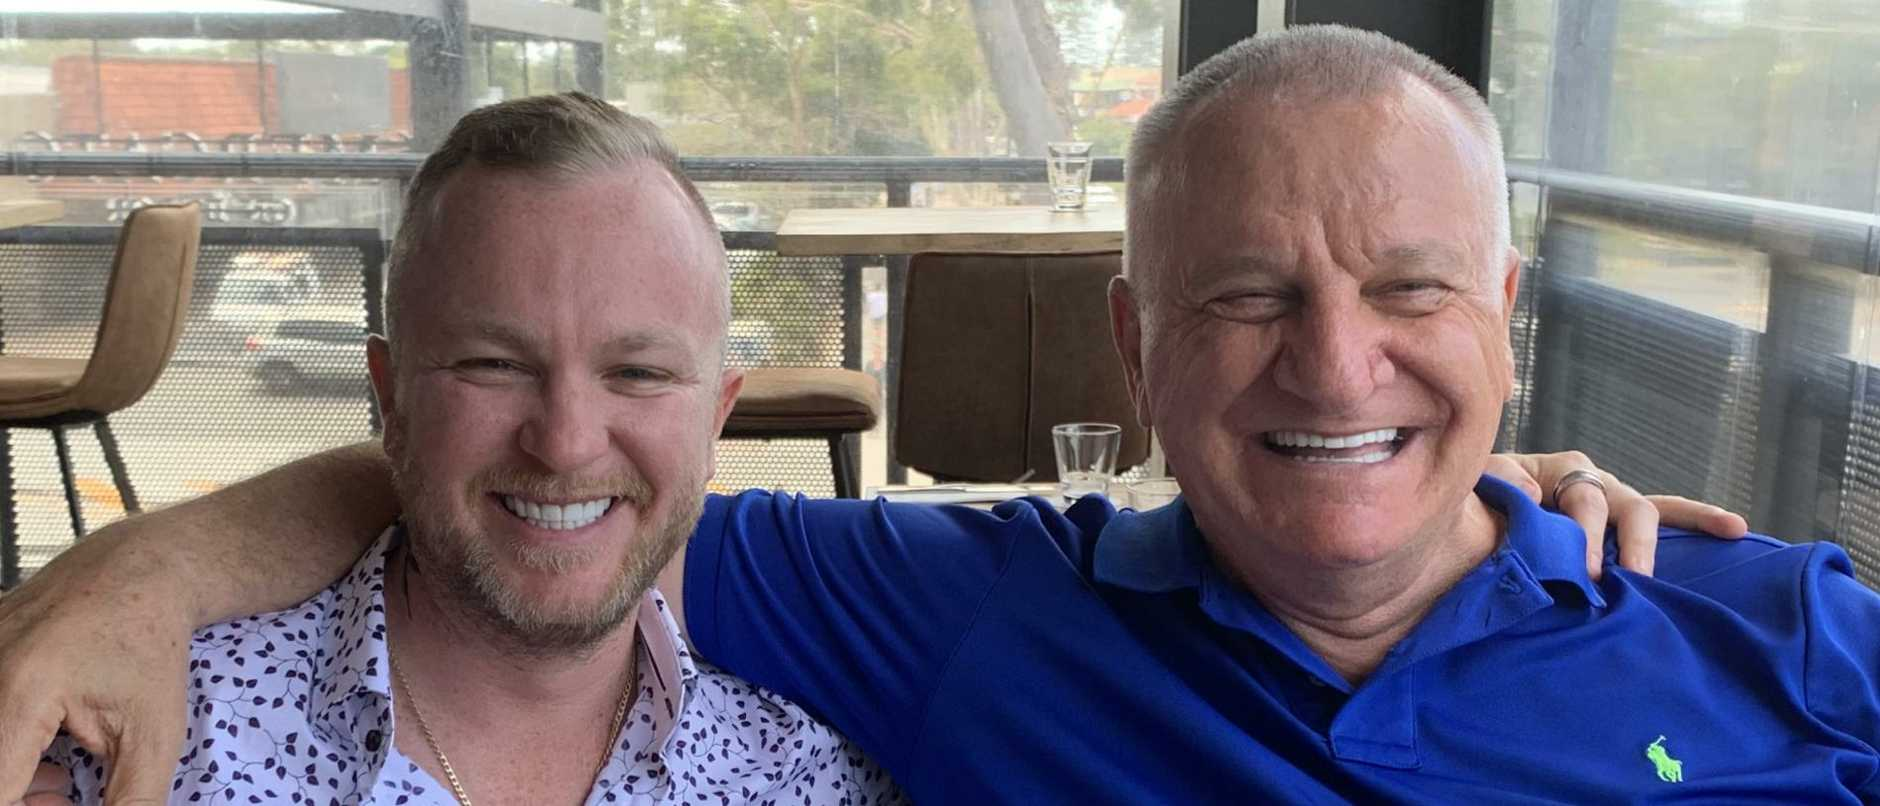 Pastor Shane Reynolds filed a Peace and Good Behaviour application in the Southport Magistrates Court last year against developer Roberto Badalotti.